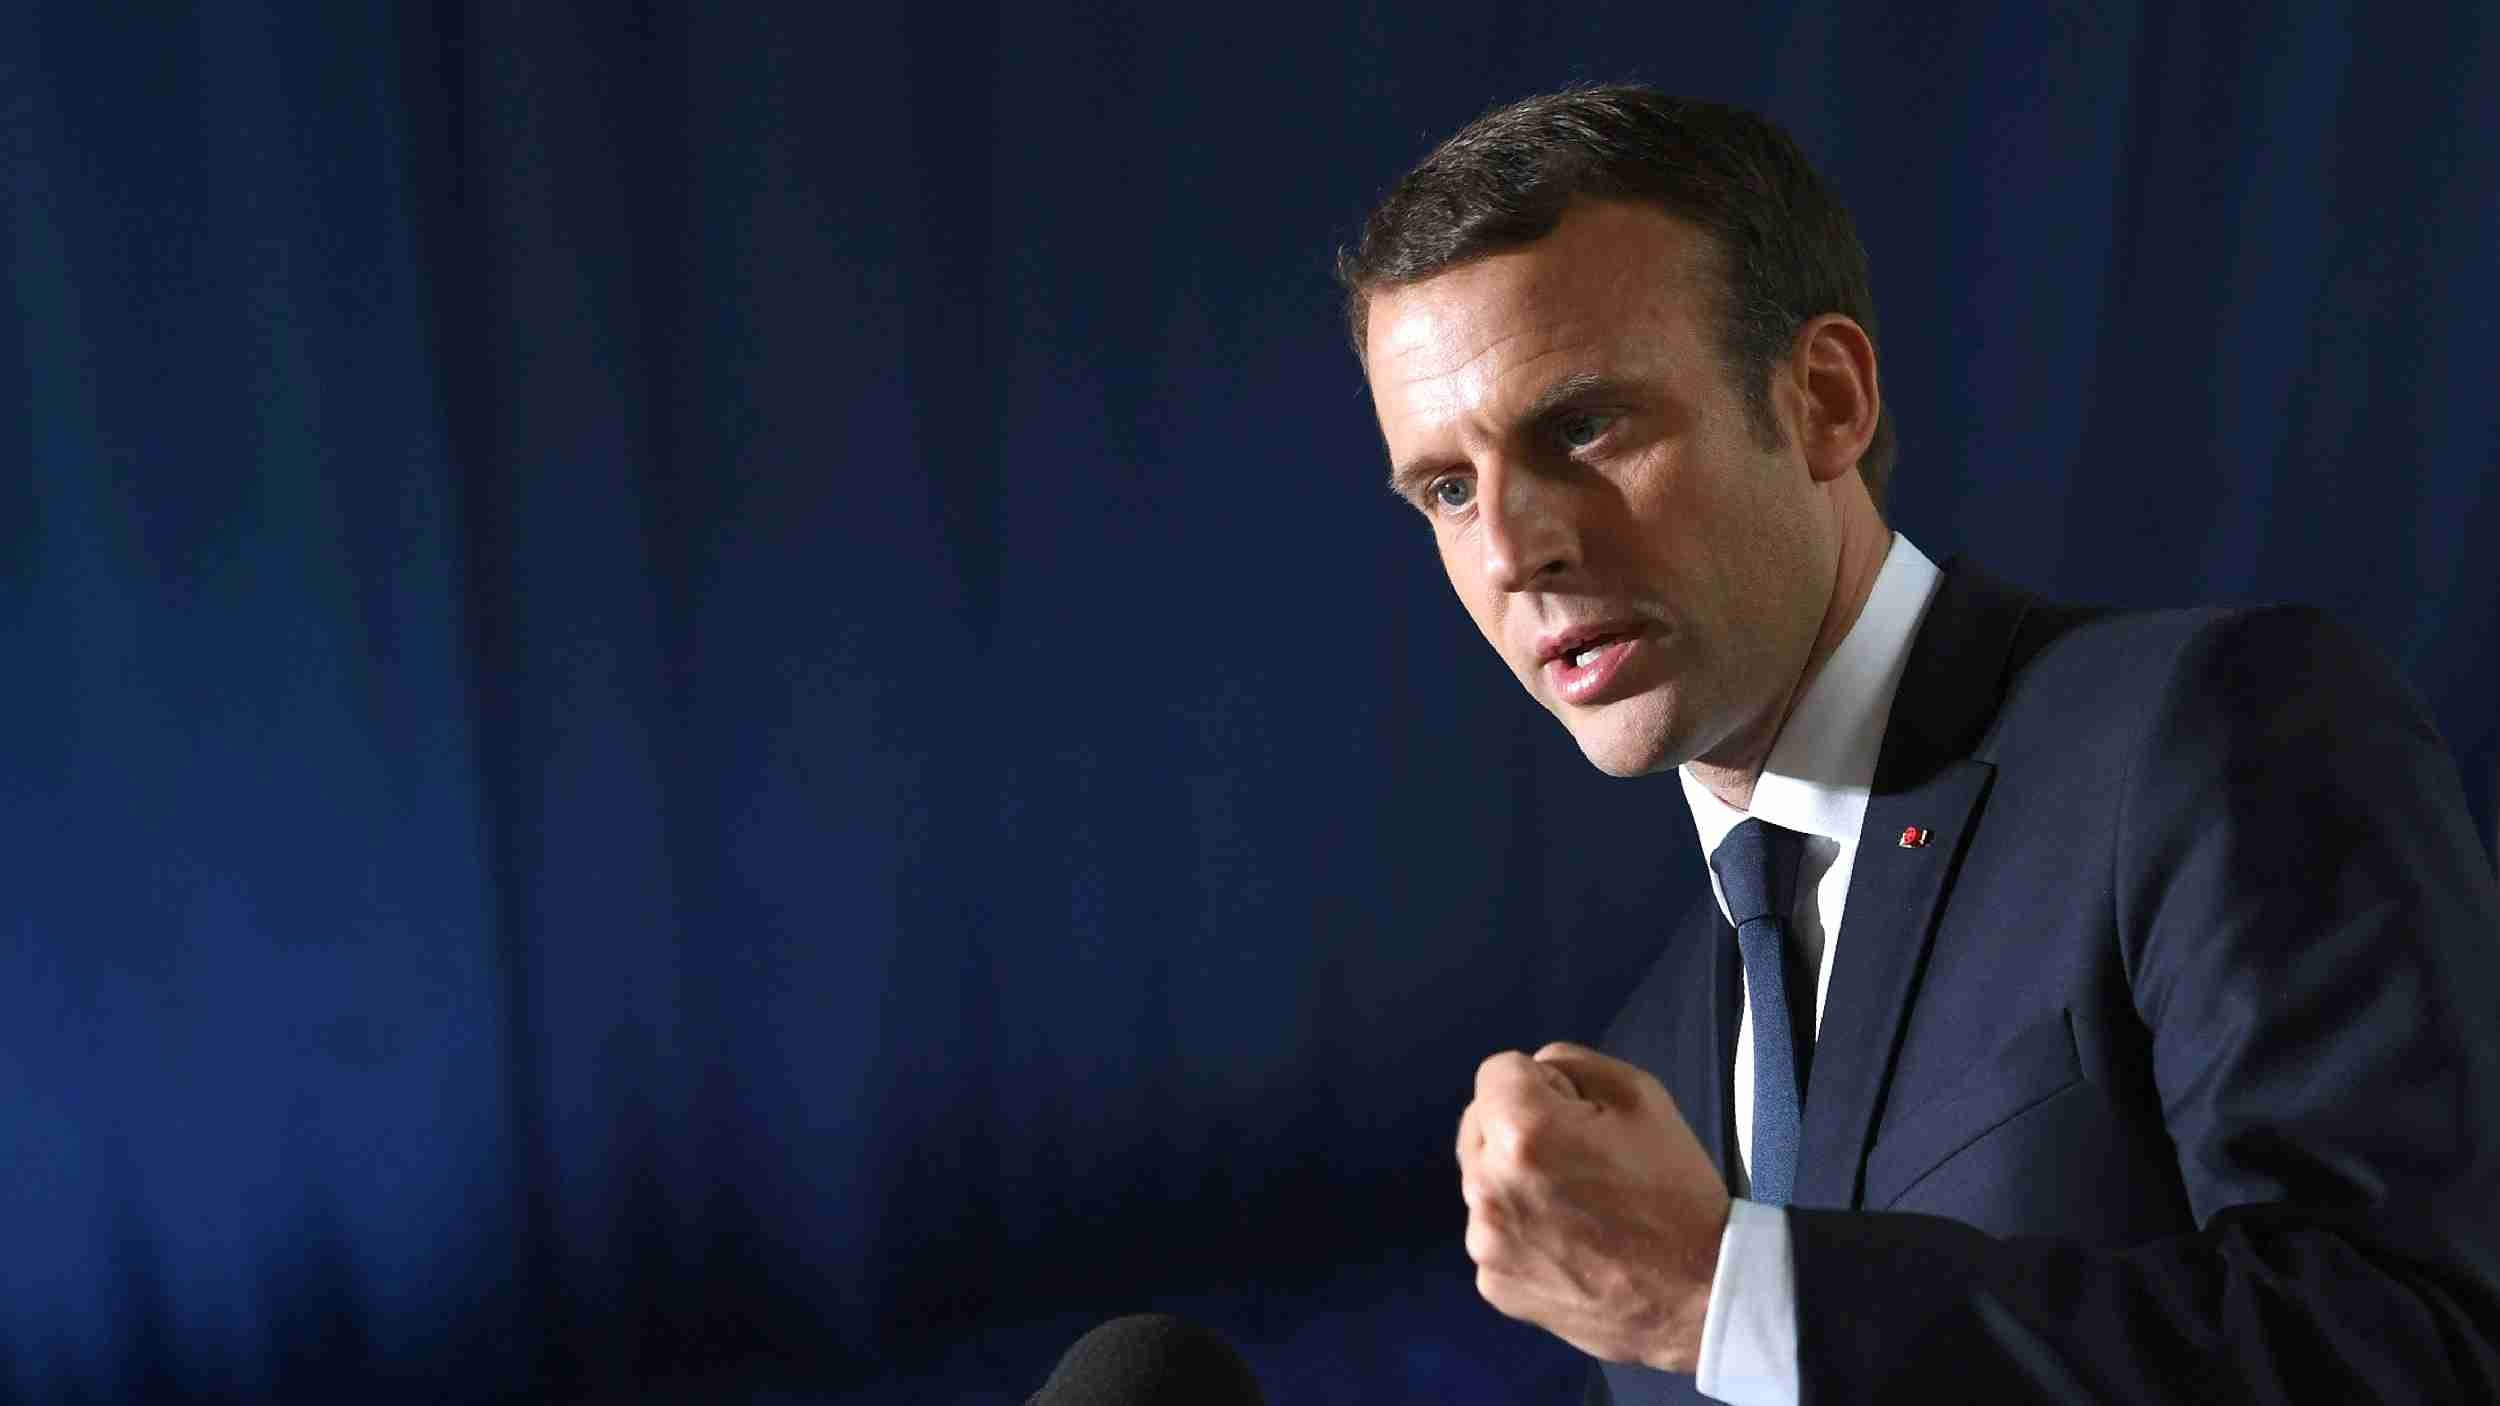 Macron pushes outreach to Russia, offers 'balancing' role